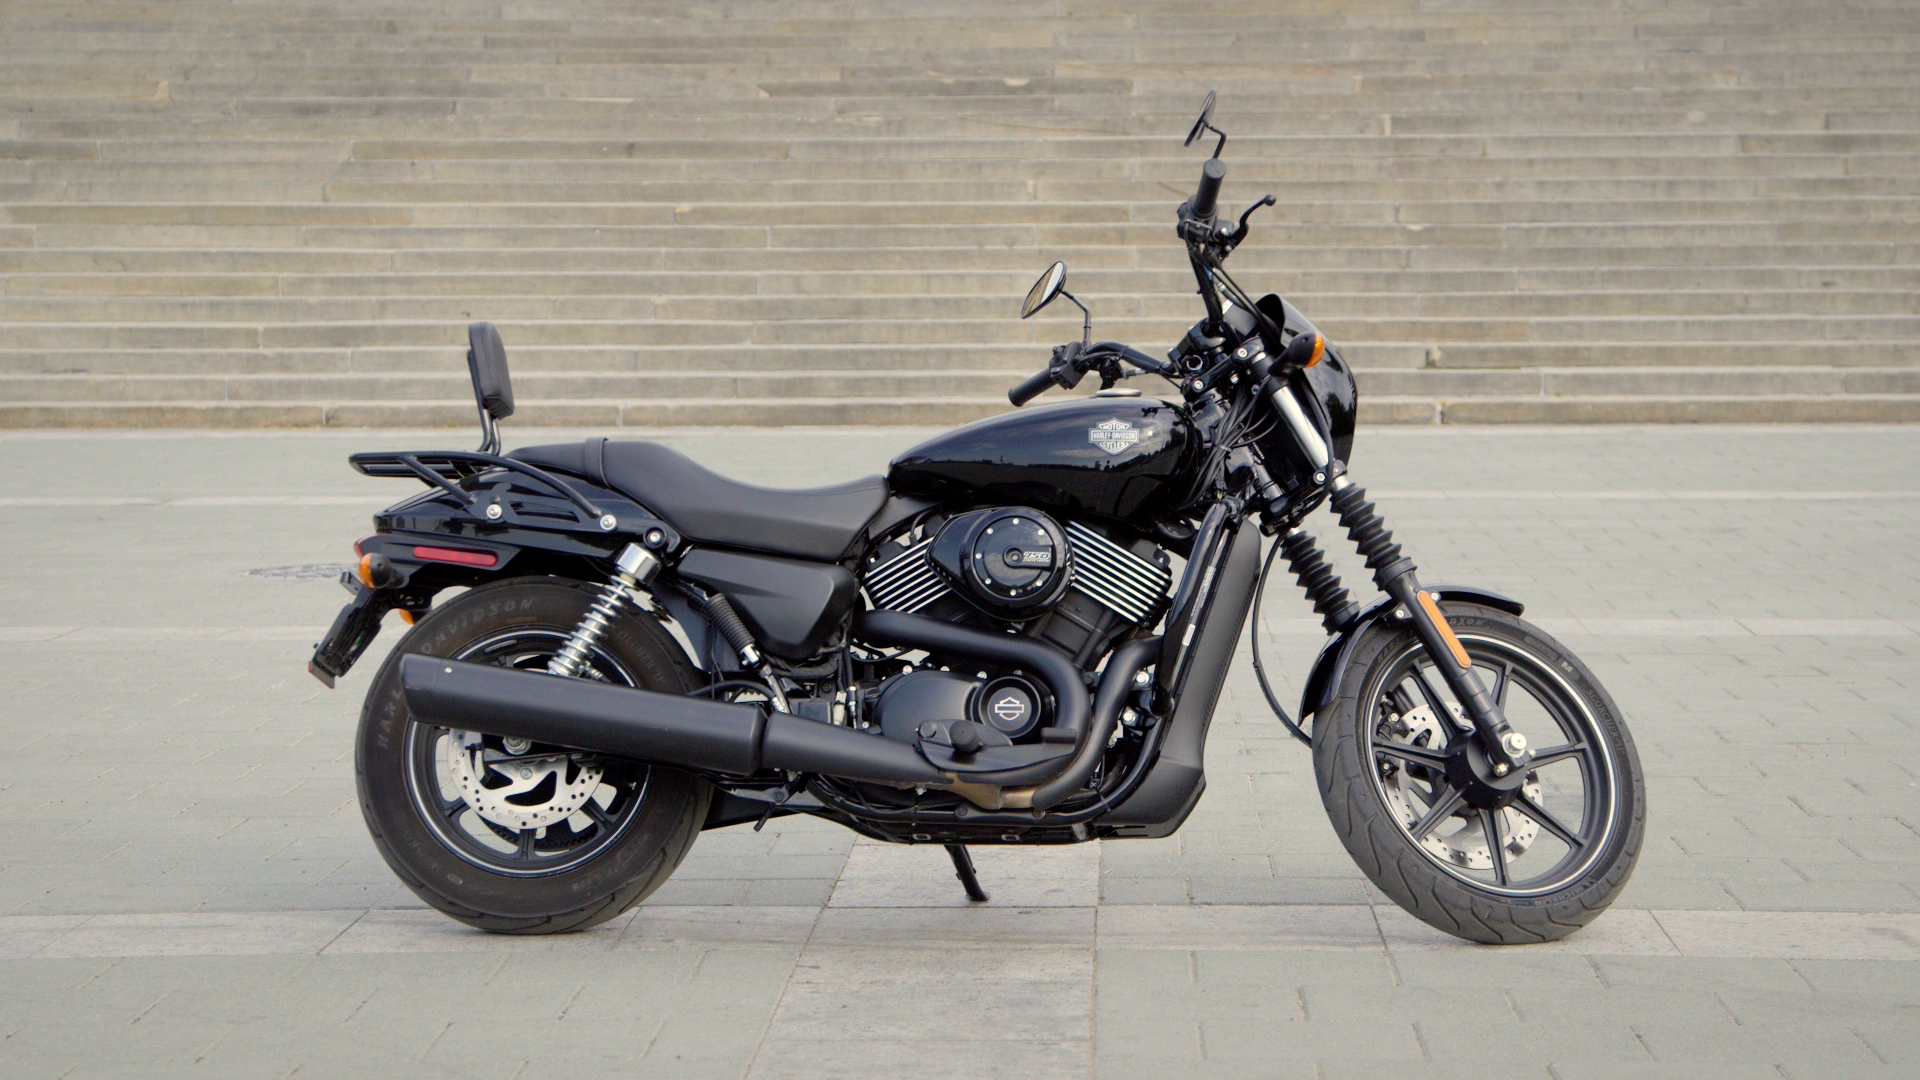 2015 Harley Davidson Street 750 Review on review harley davidson street 750